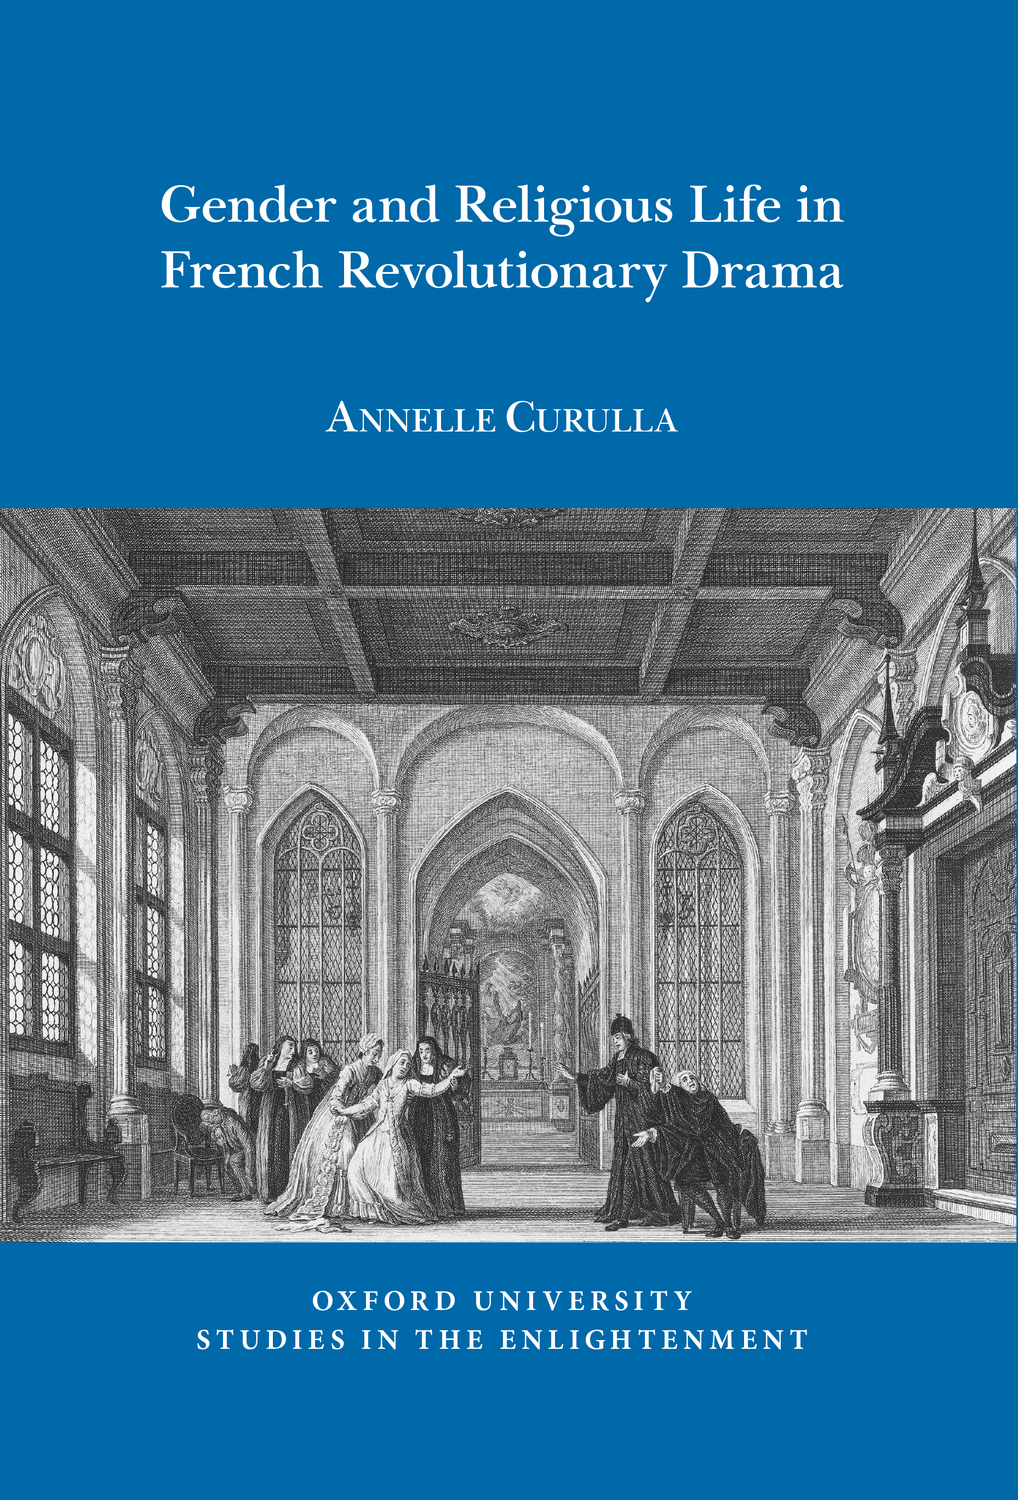 Gender and Religious Life in French Revolutionary Drama